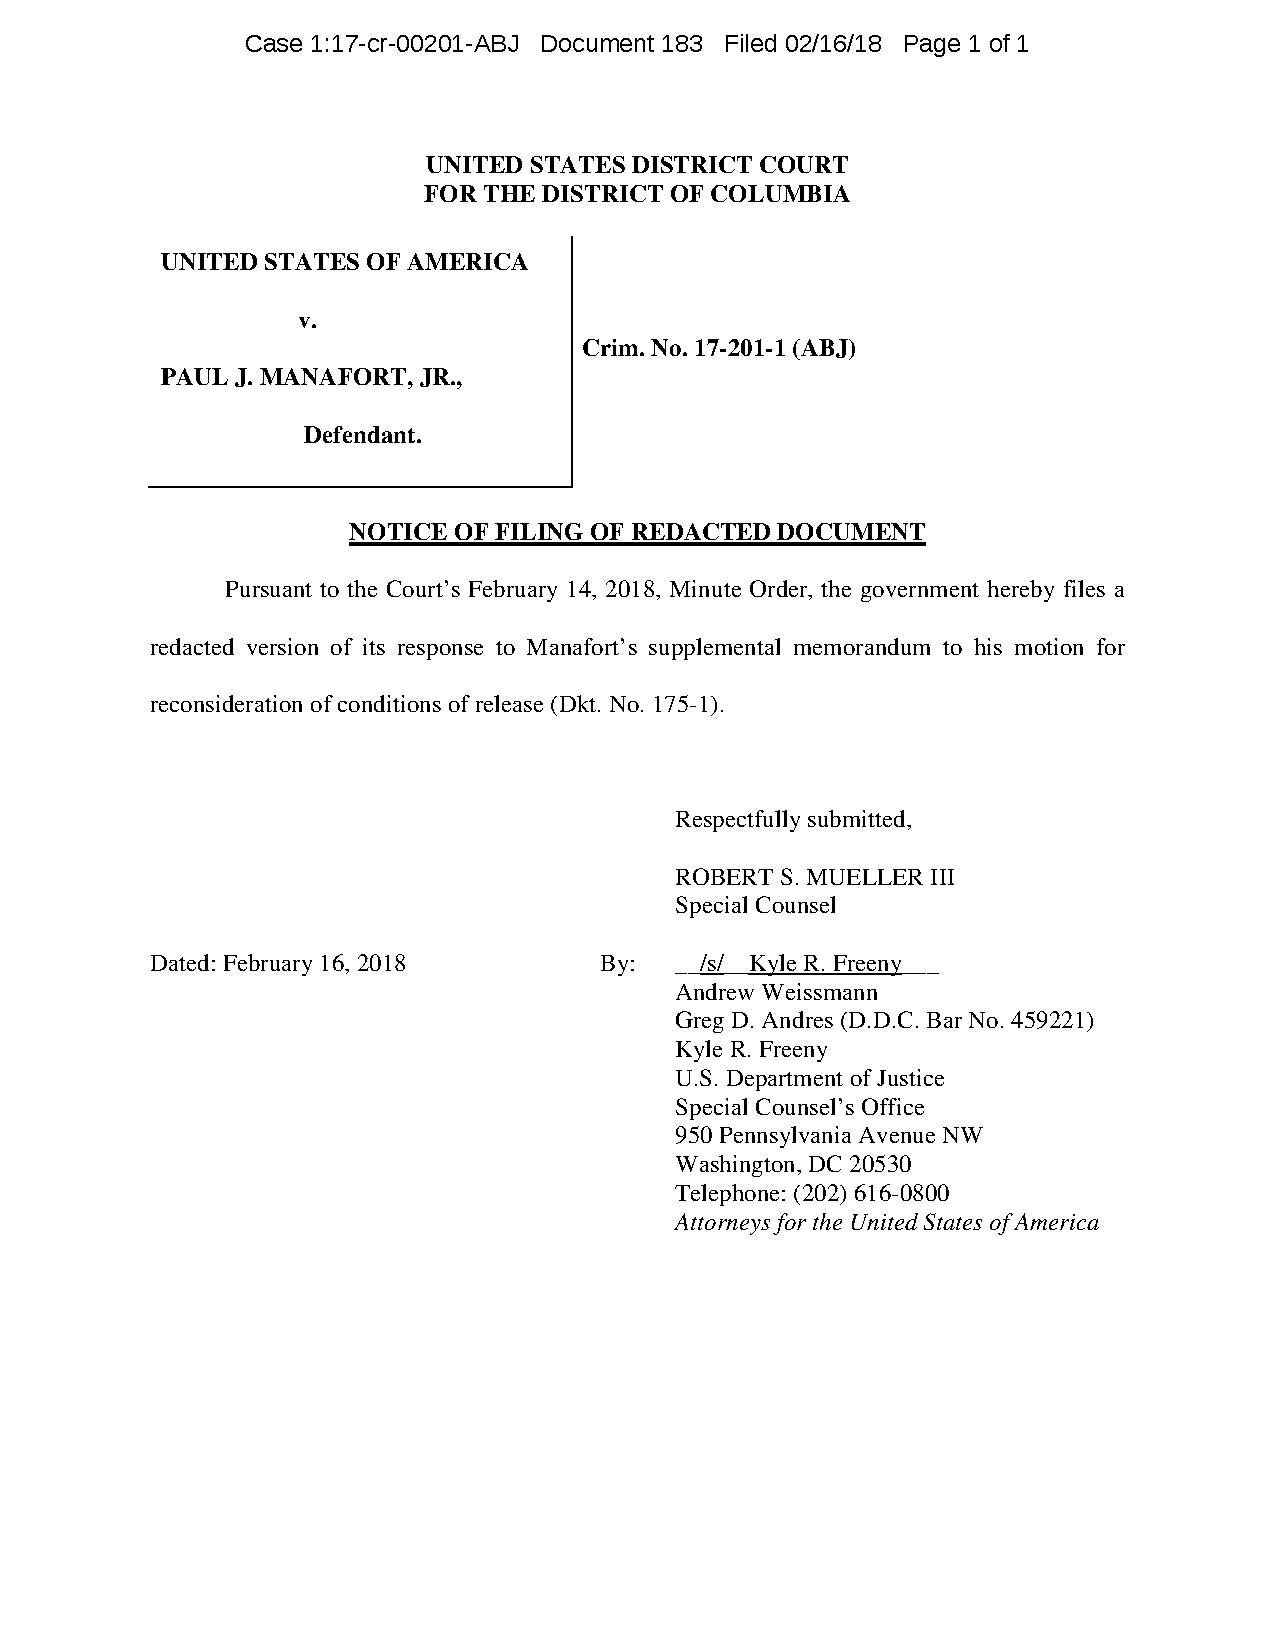 file motion for reconsideration of conditions of release pdf